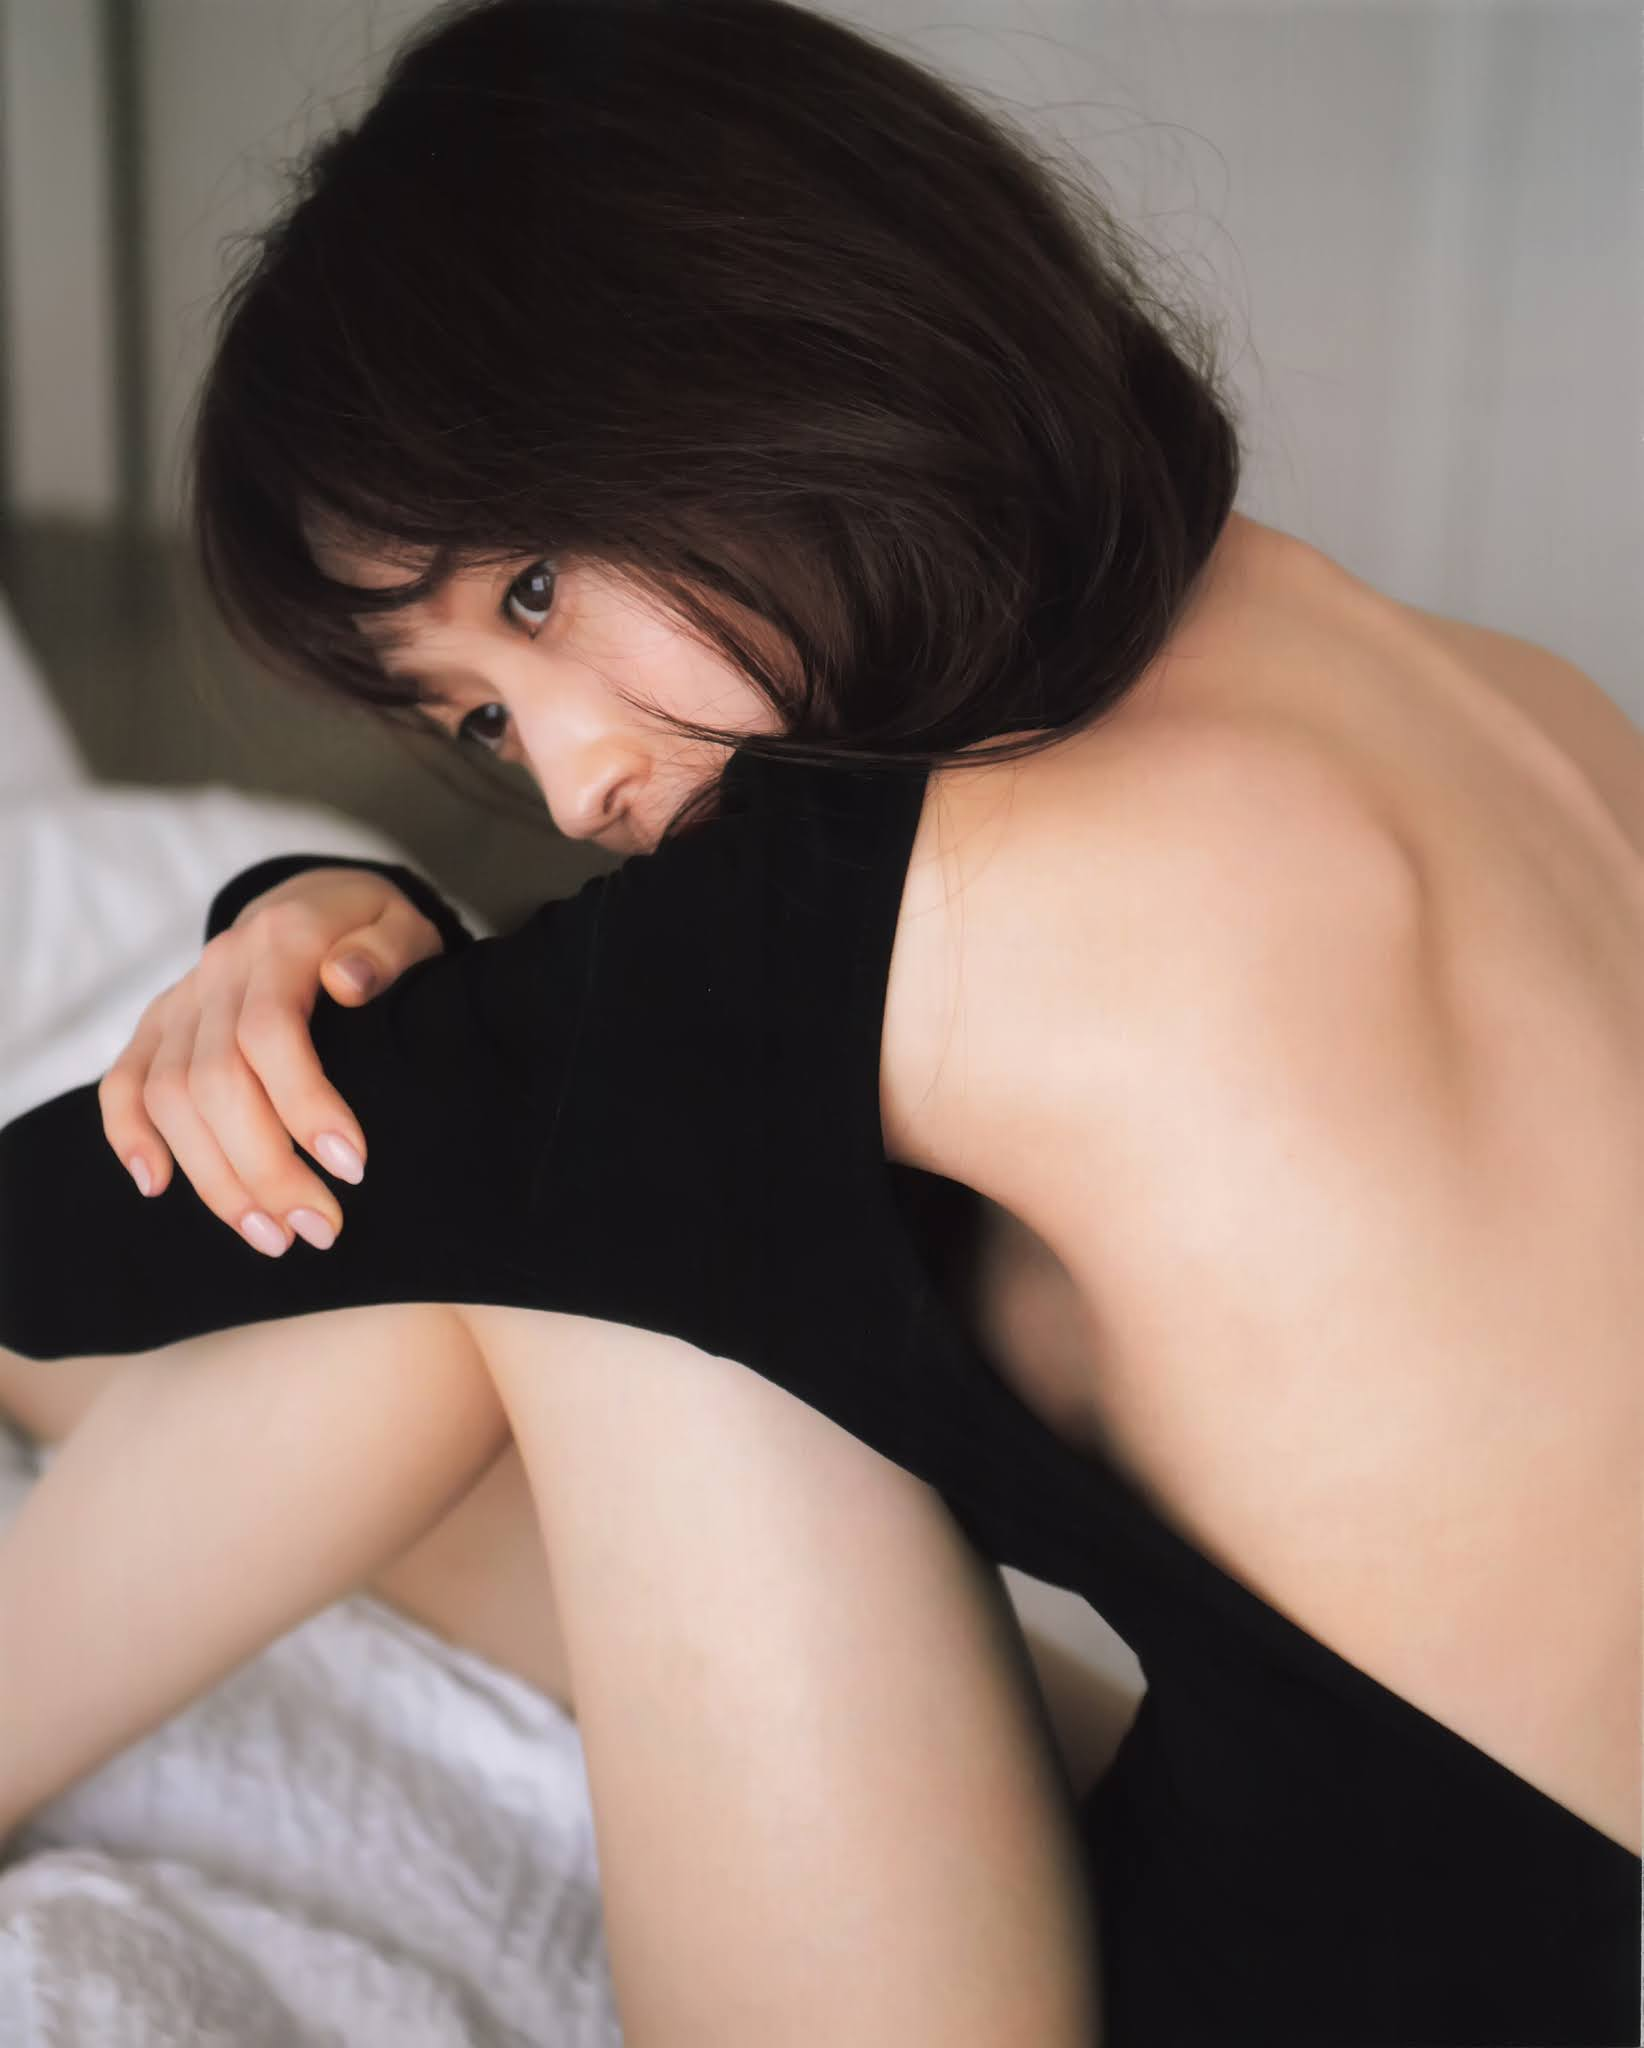 23yearold body fascinated in Hawaii Maho Yamaguchi104